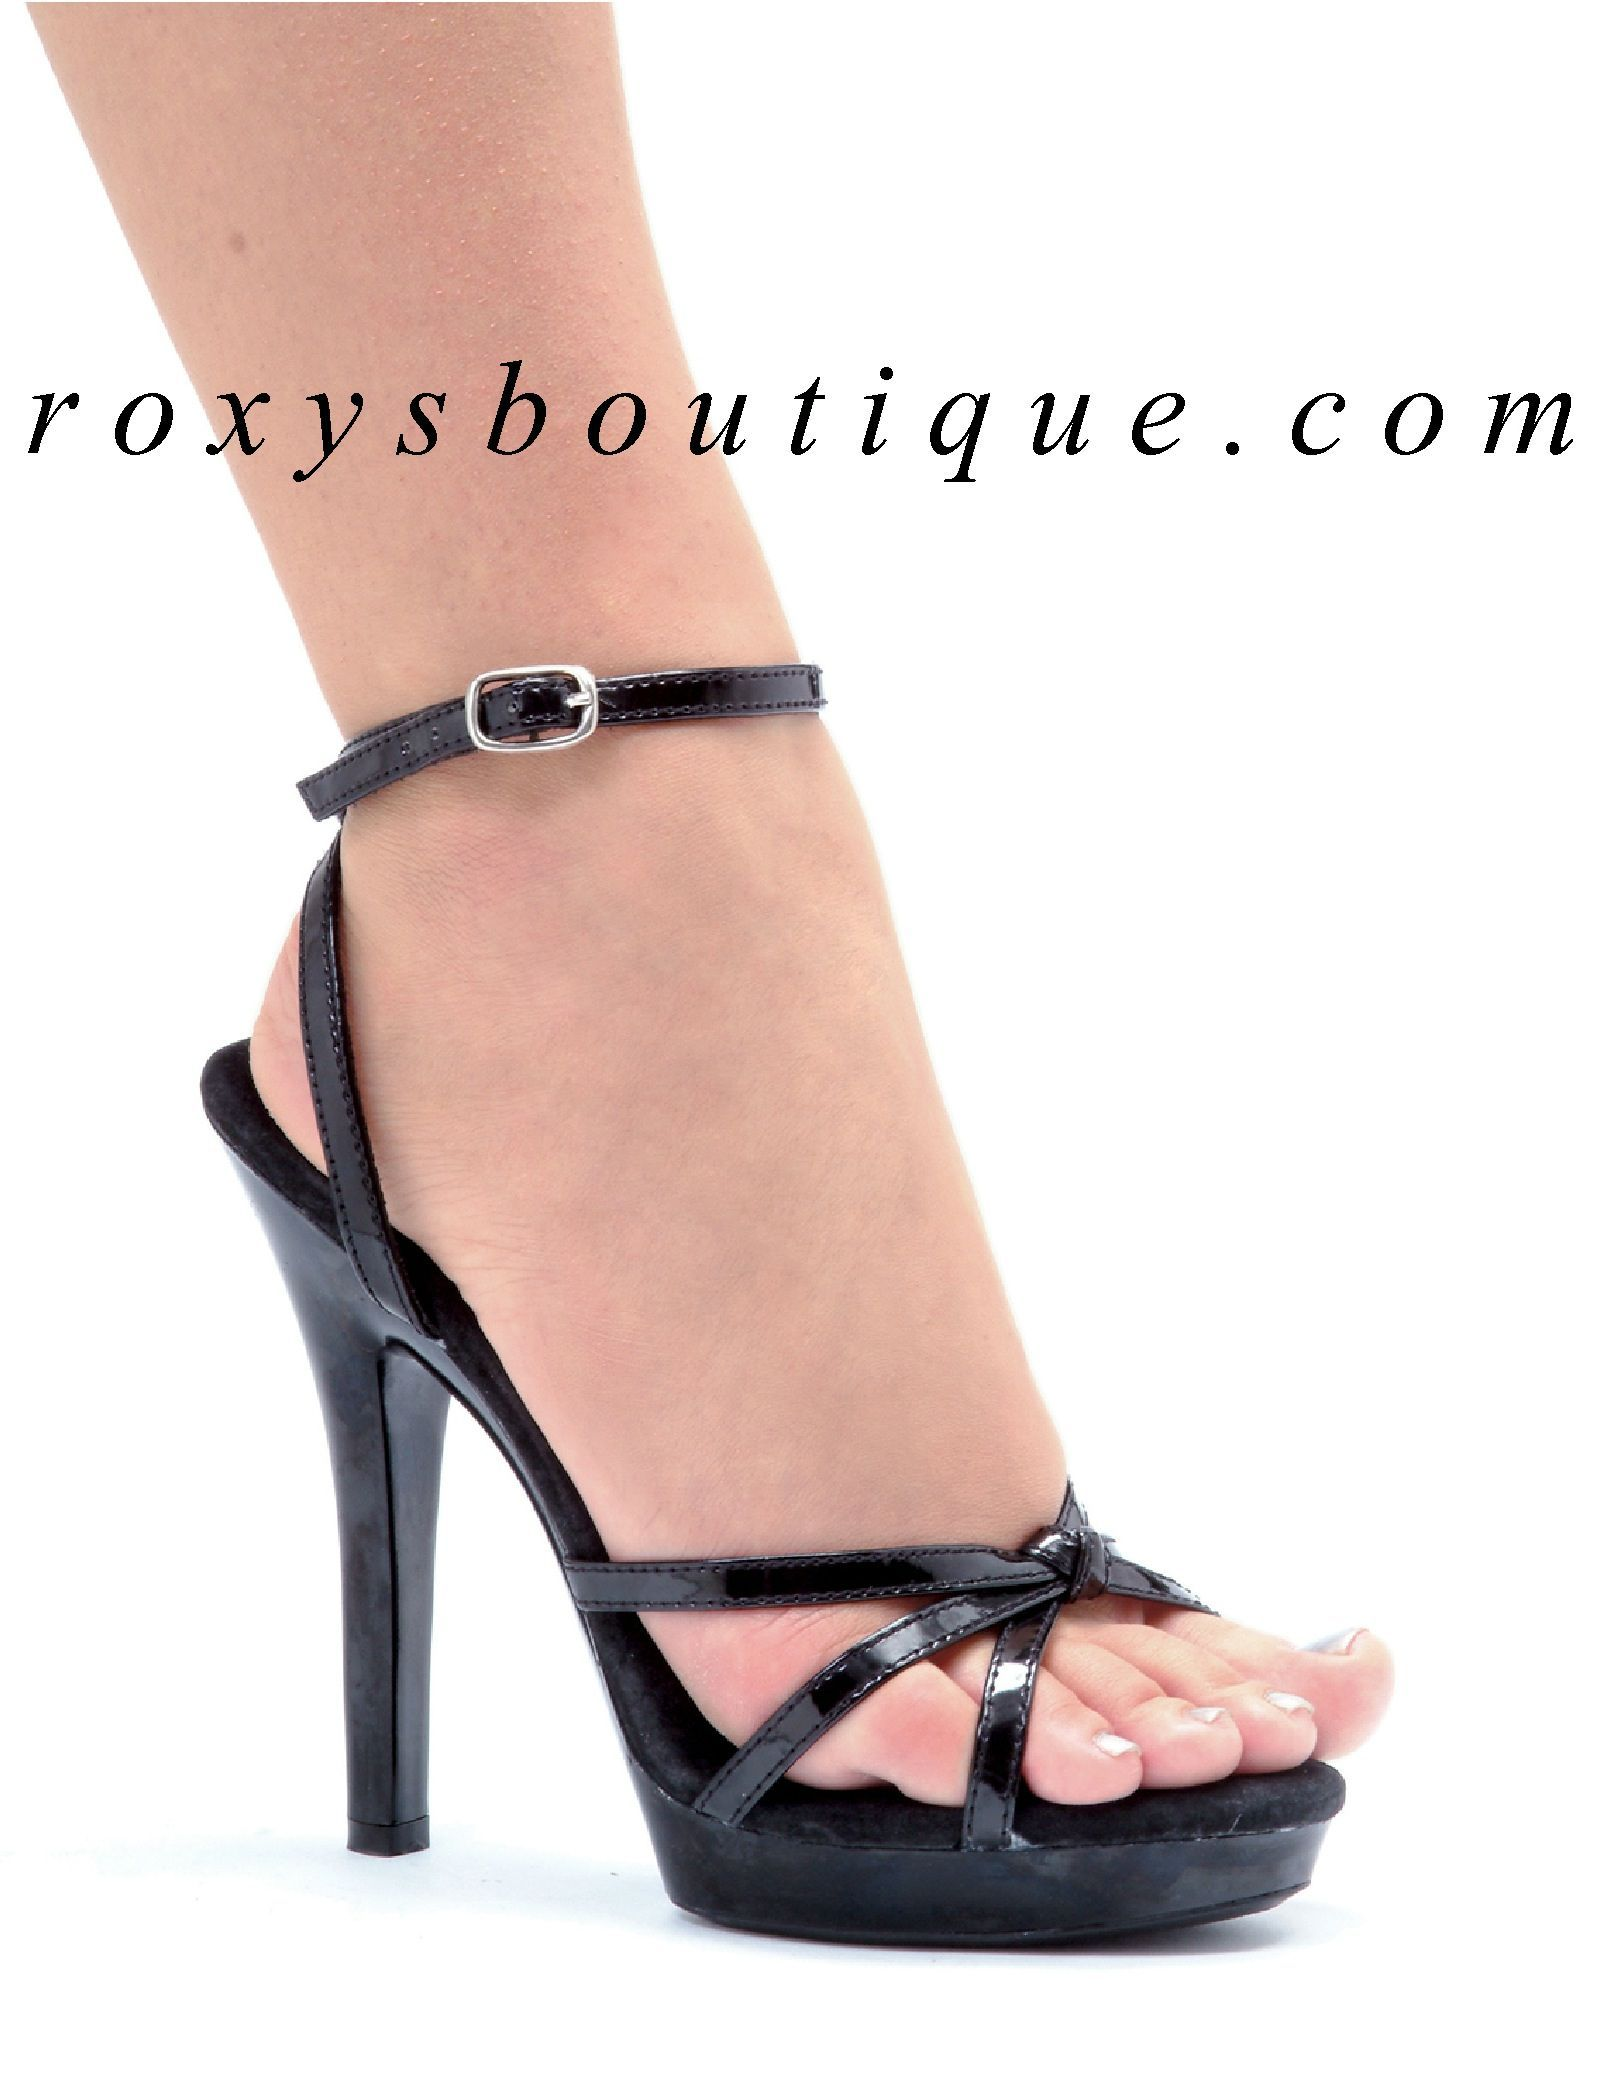 43901dd04a62 Black ankle strap sandals with 3/4 inch platforms and 5 inch stiletto heels  - M-Gigi - Ellie Shoes - $57.25 #Stilettoheels